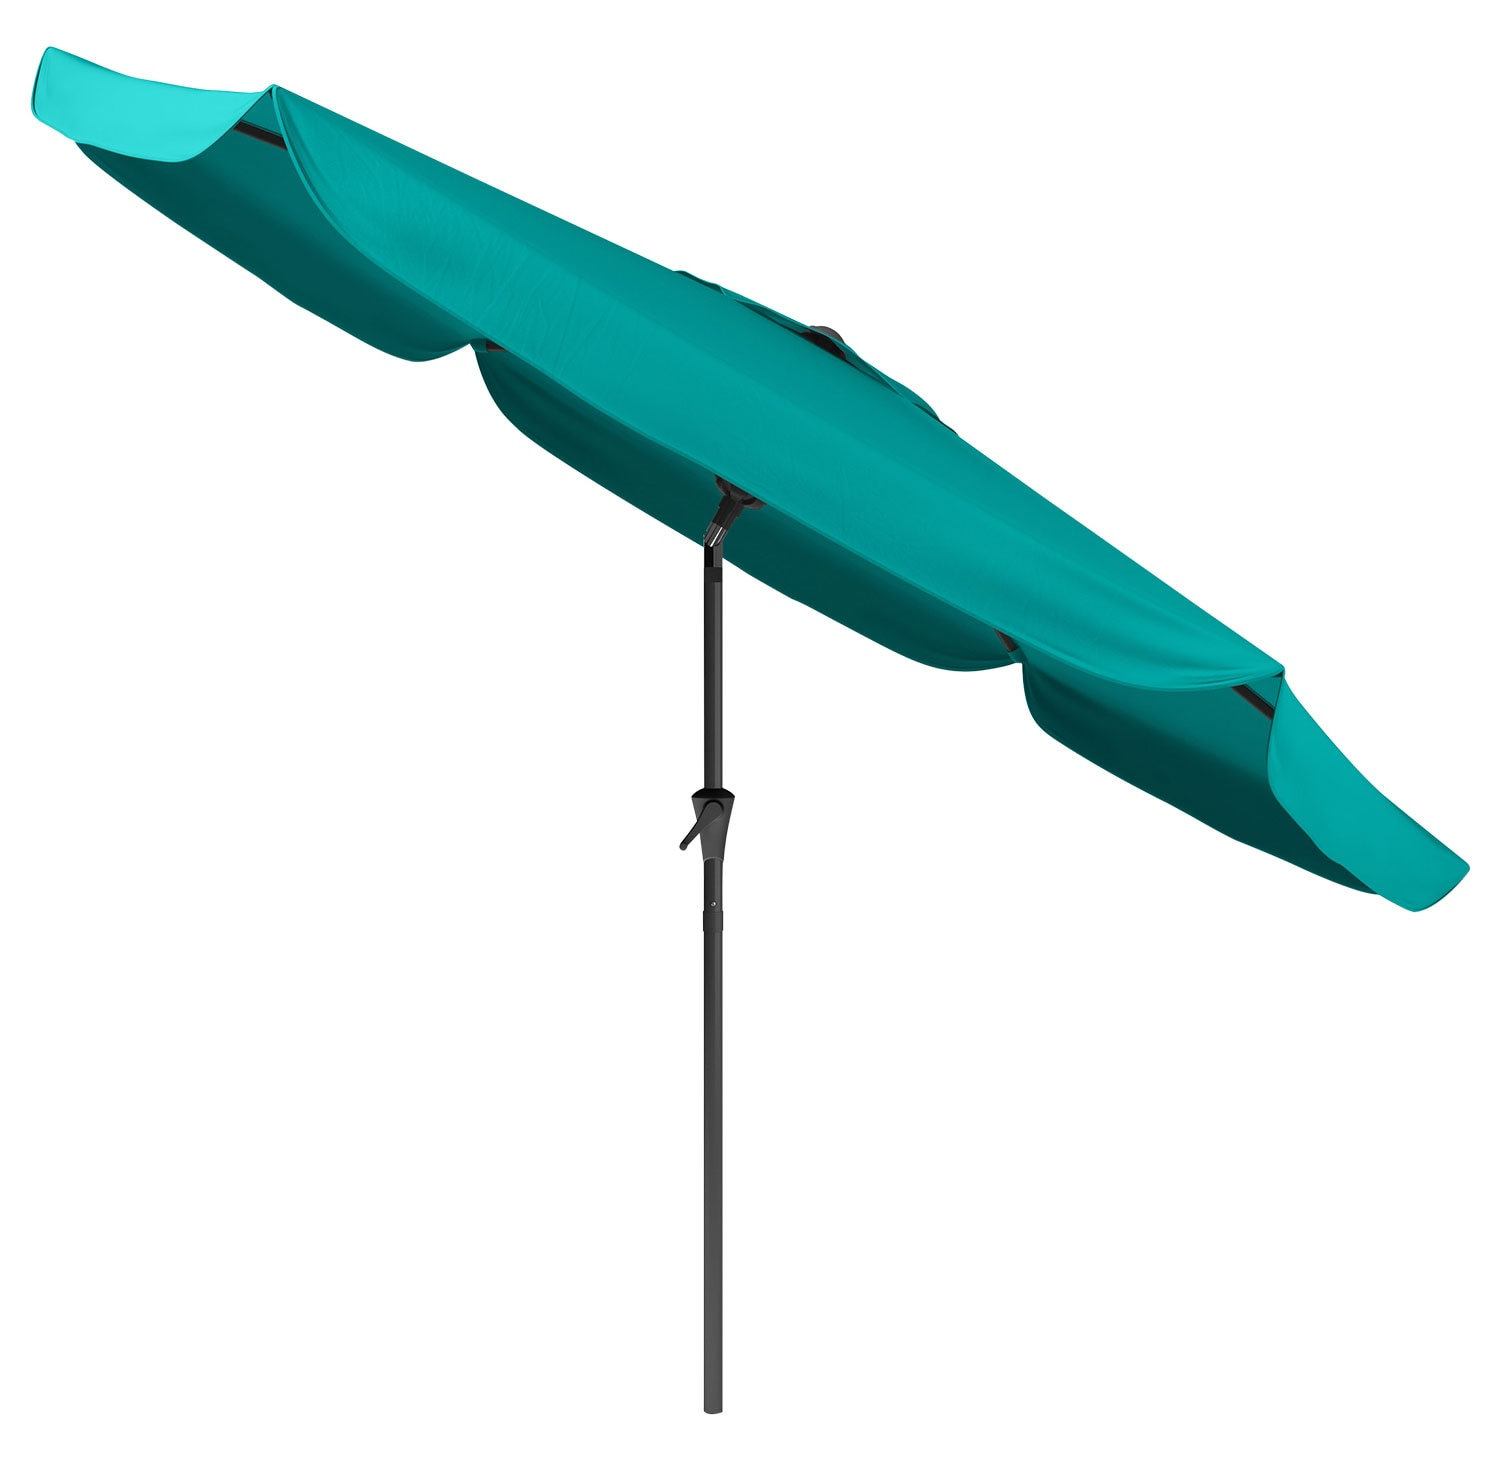 Tilting-Top Patio Umbrella – Turquoise Blue